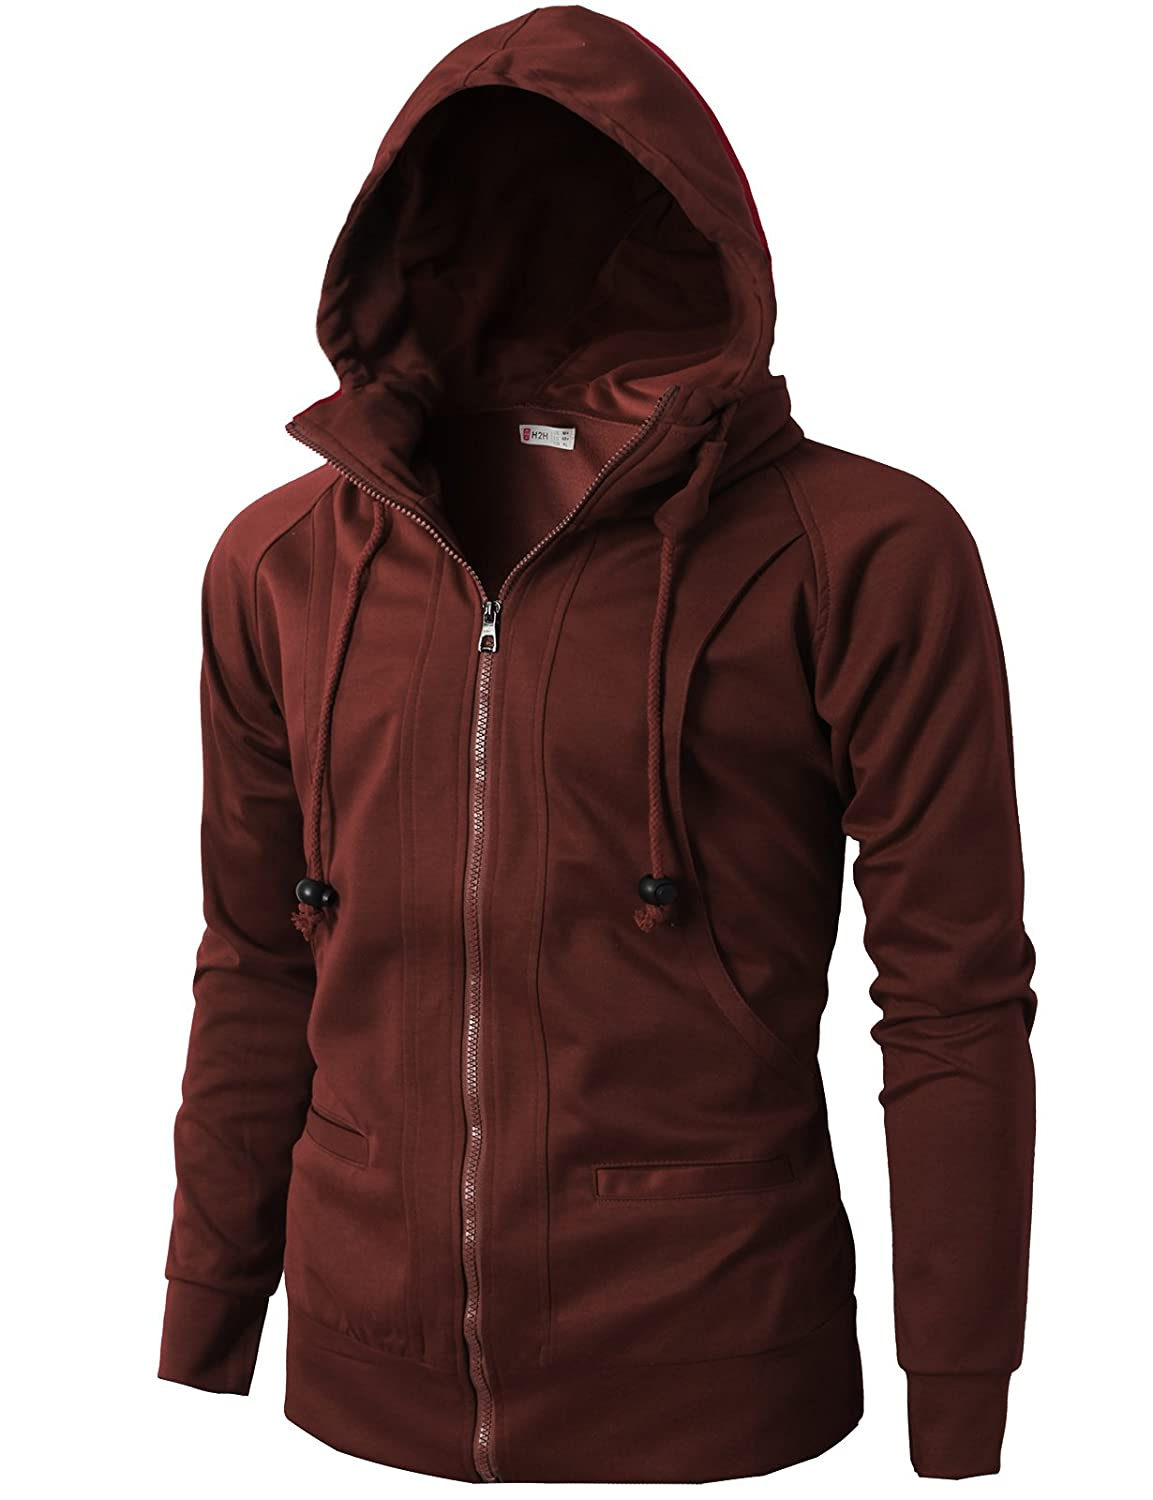 Cool Zip Up Hoodies For Men - Trendy Clothes